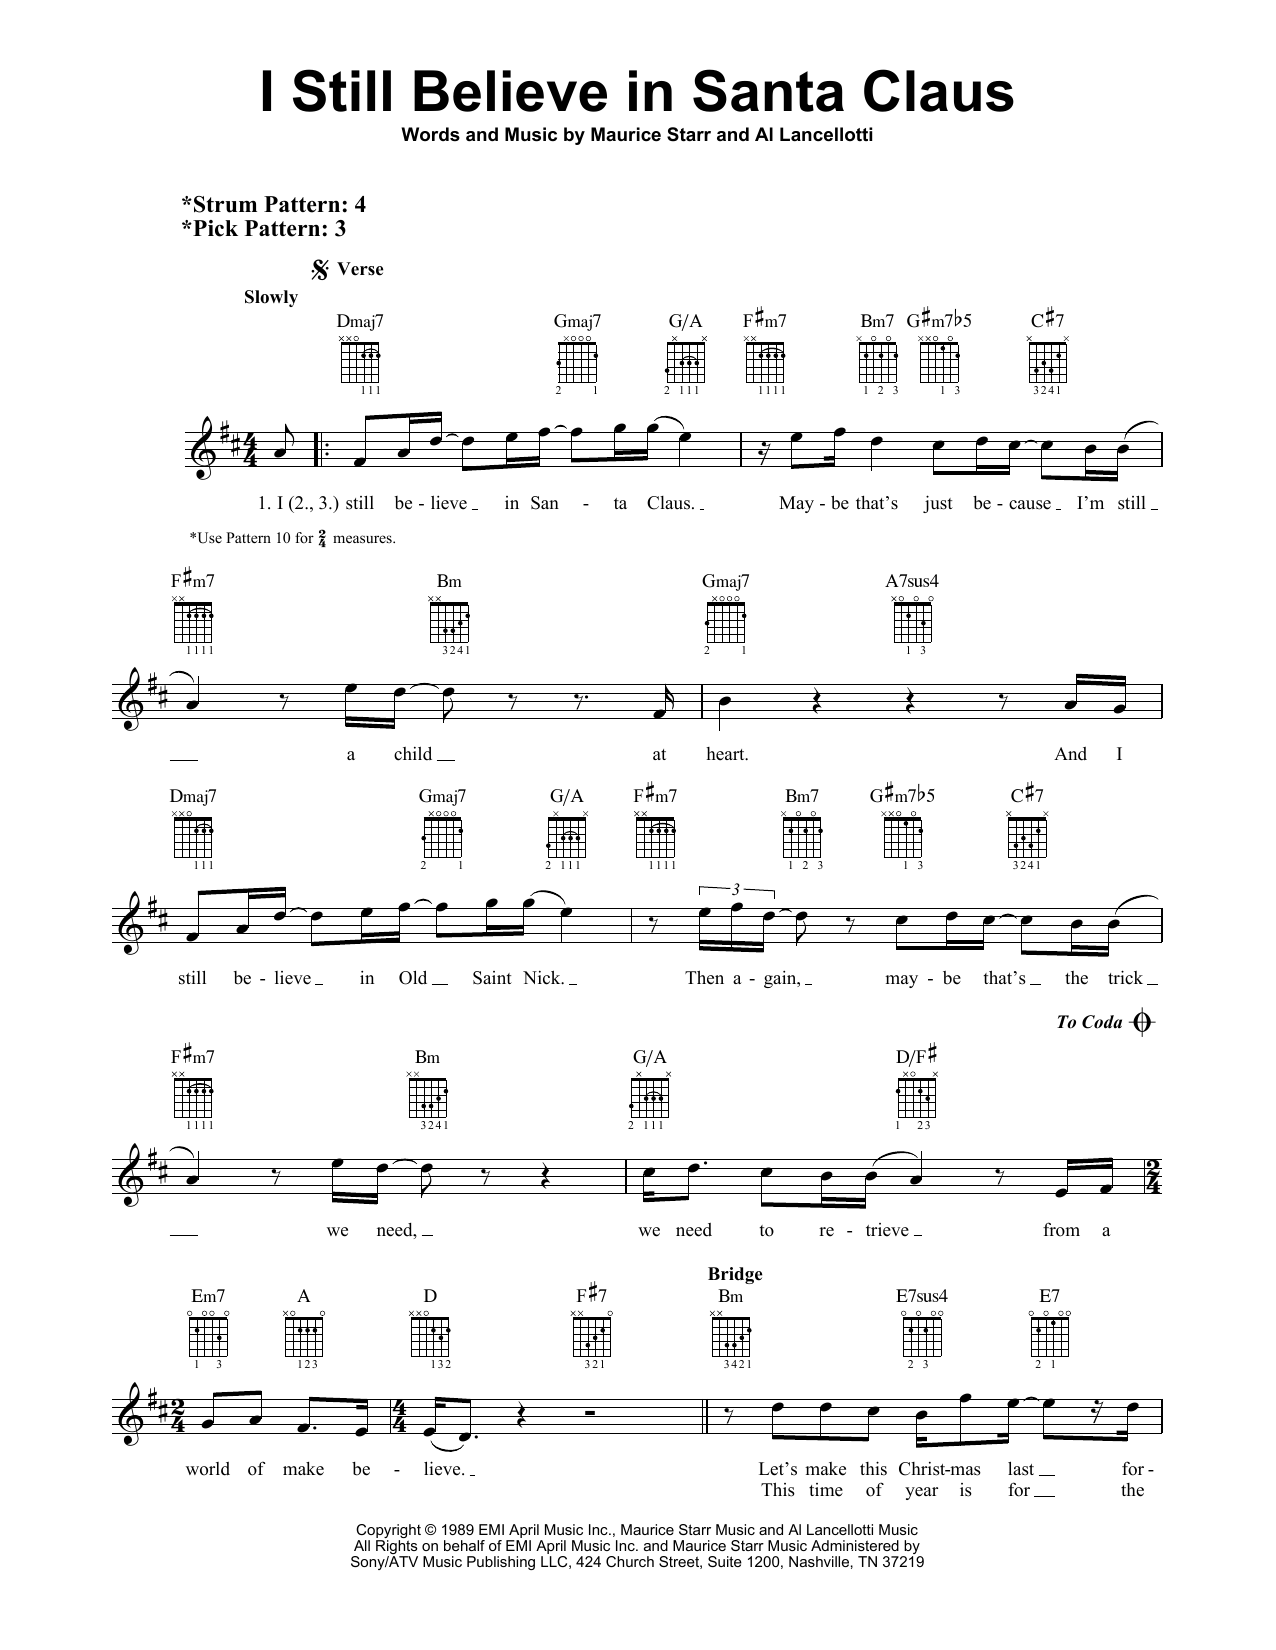 Al Lancellotti I Still Believe In Santa Claus sheet music notes and chords. Download Printable PDF.